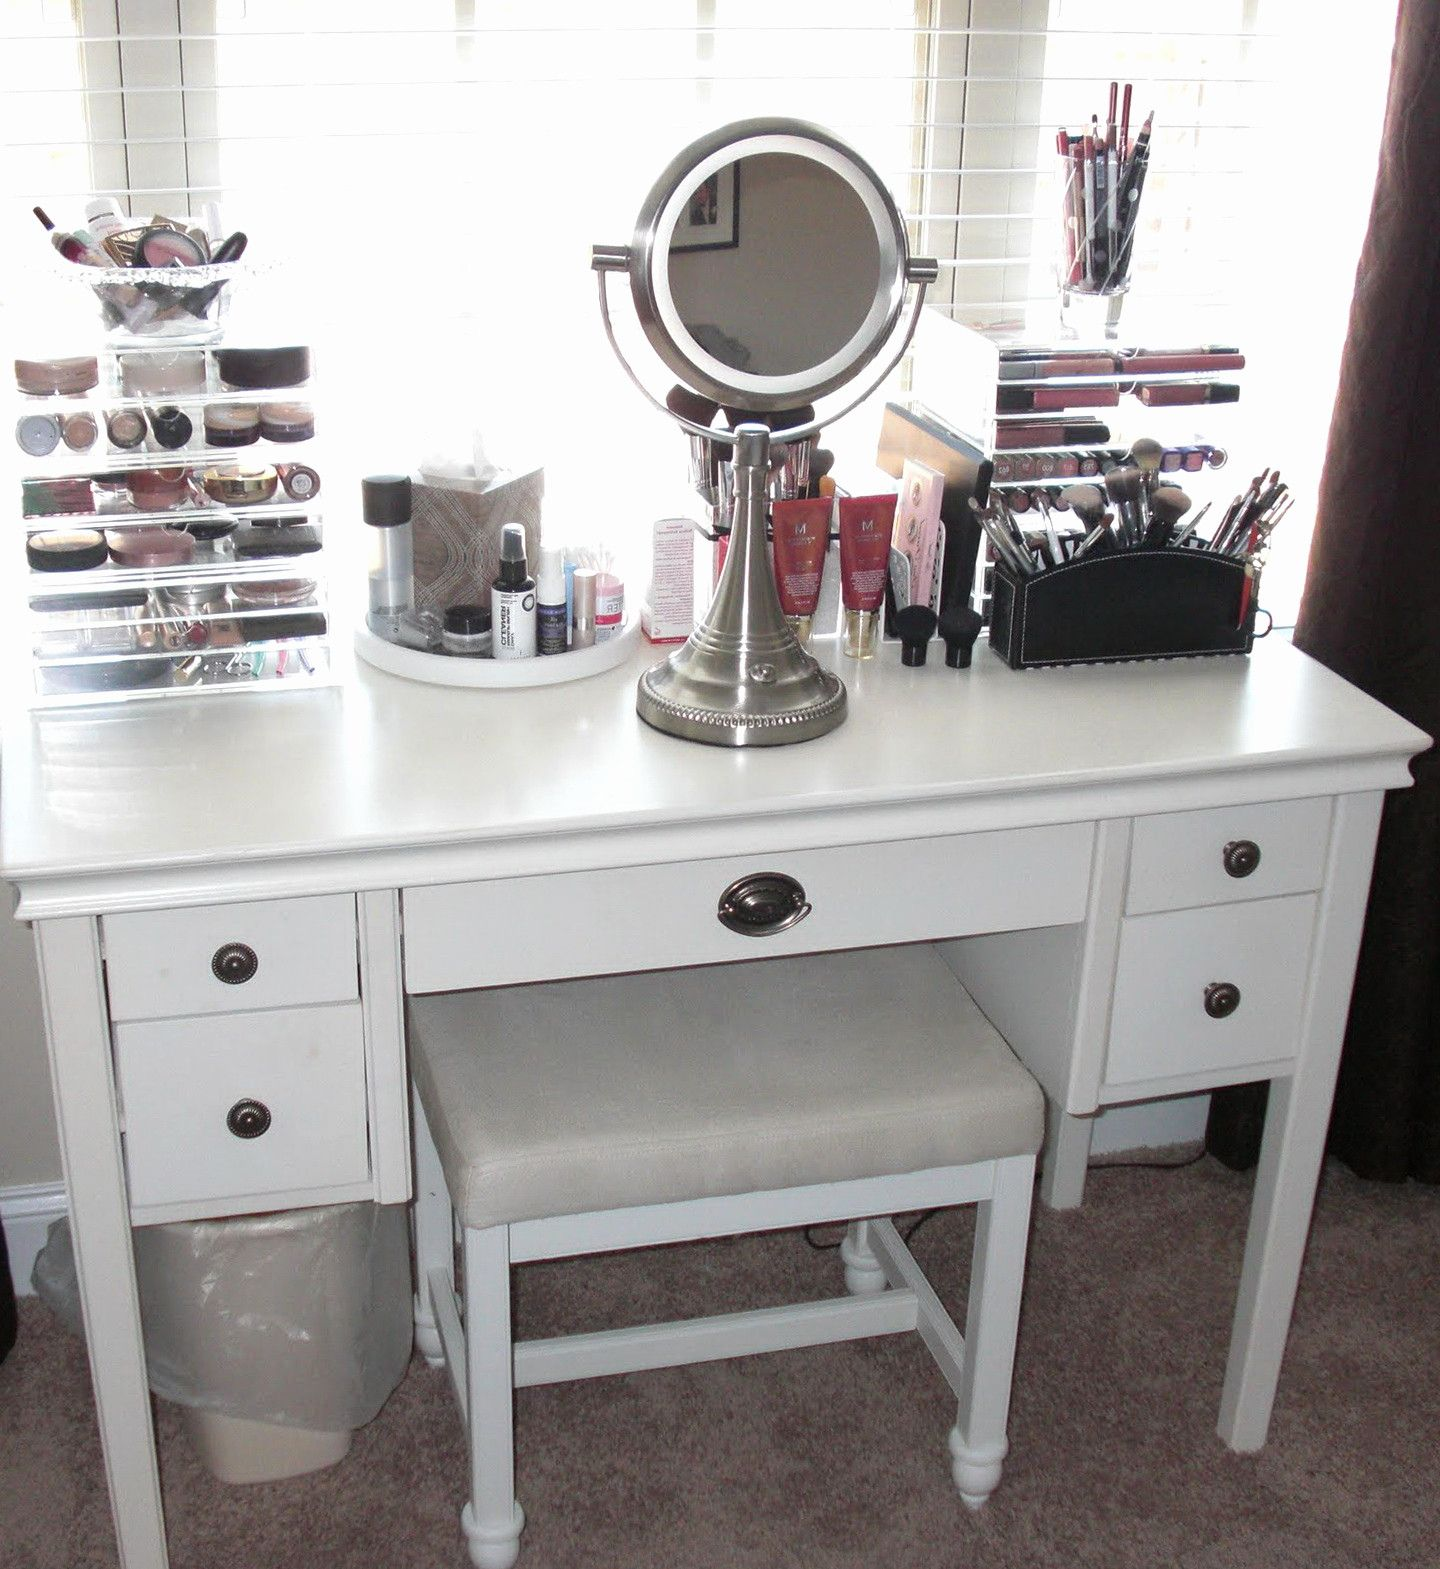 10 Small Bedroom Vanity Ideas Most Of The Brilliant And Stunning Bedroom Vanity Set Bedroom Vanity Small Bedroom Vanity